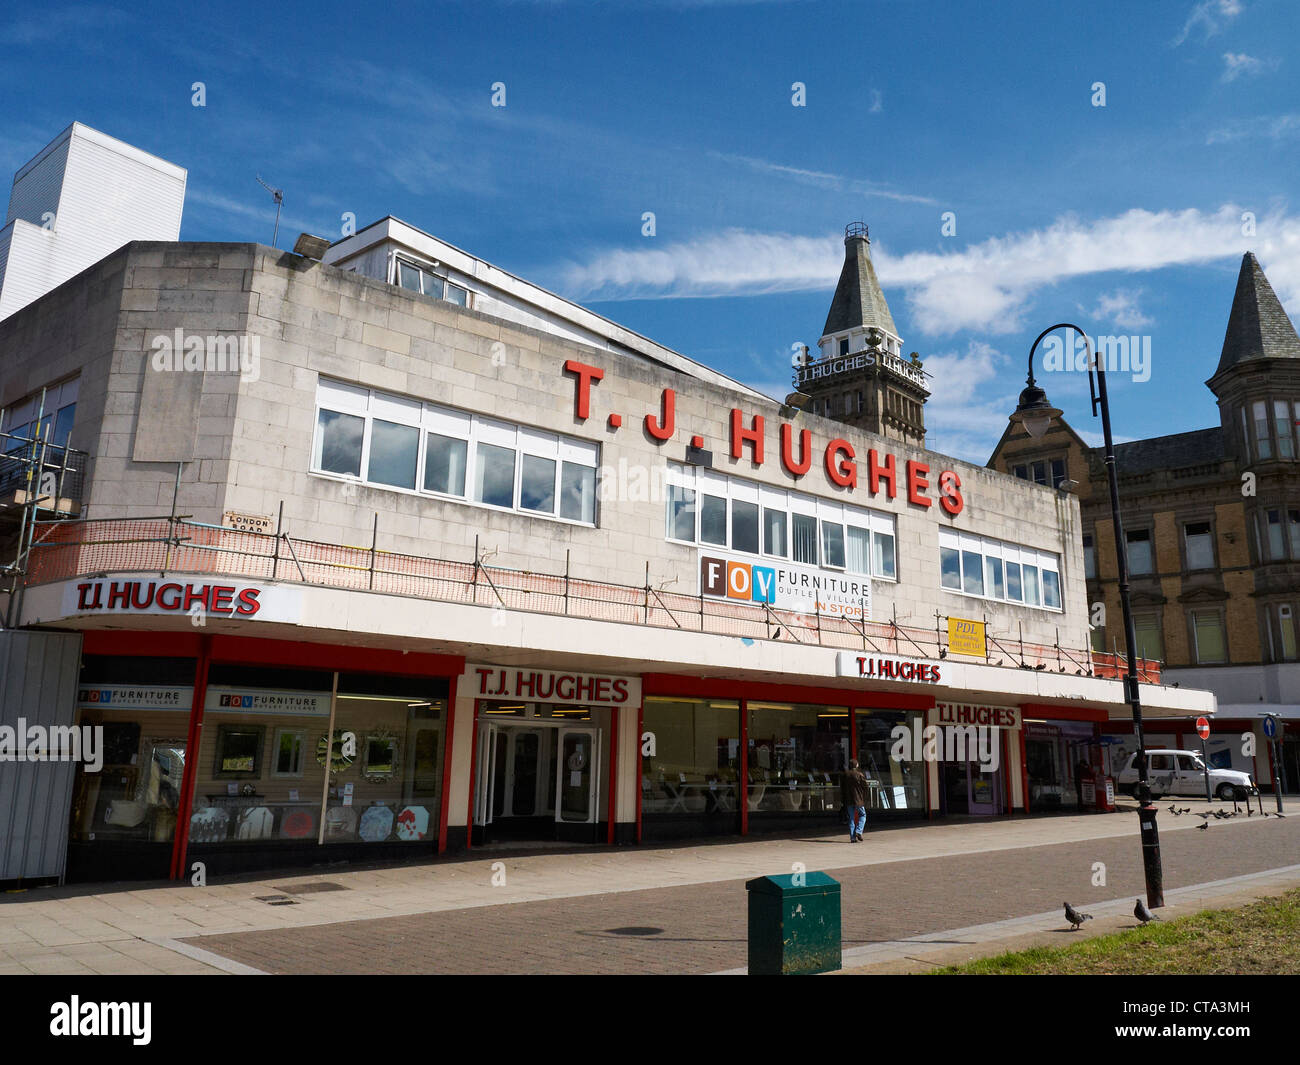 T J Hughes Retail Store In Liverpool Uk Stock Photo 49394929 Alamy